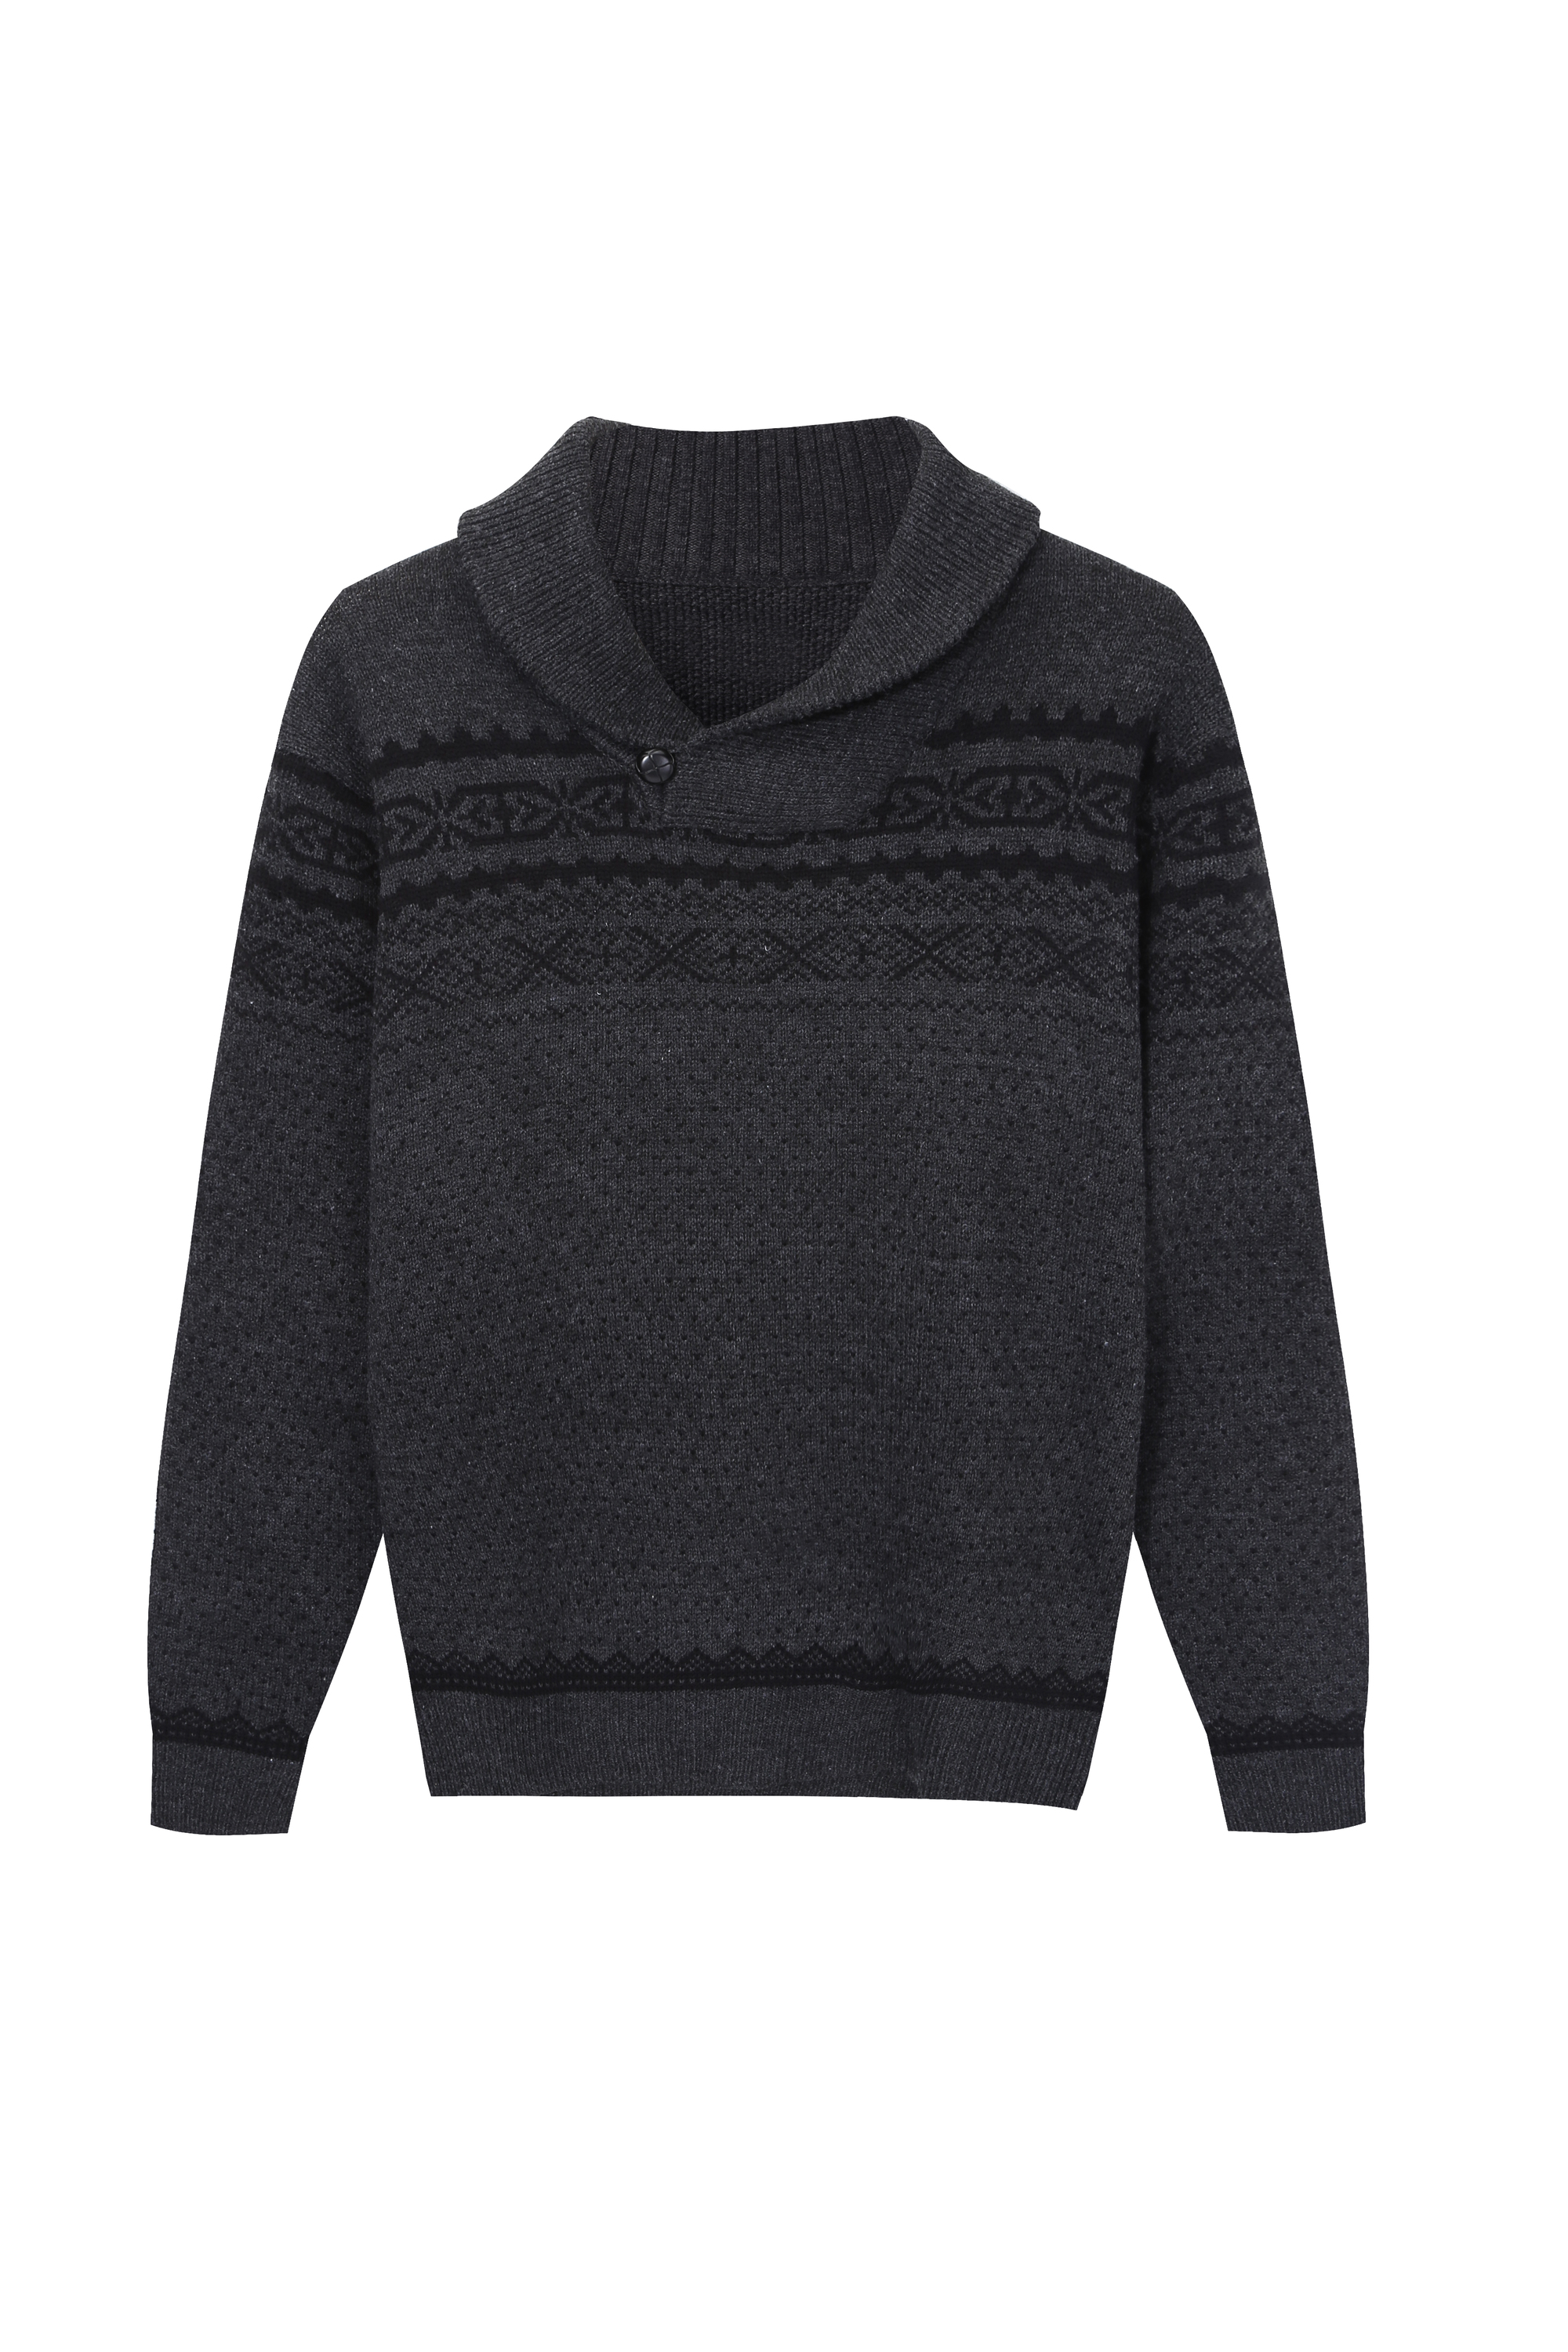 Men's Fashion Shawl Collar Pullover Jacquard Knitwear